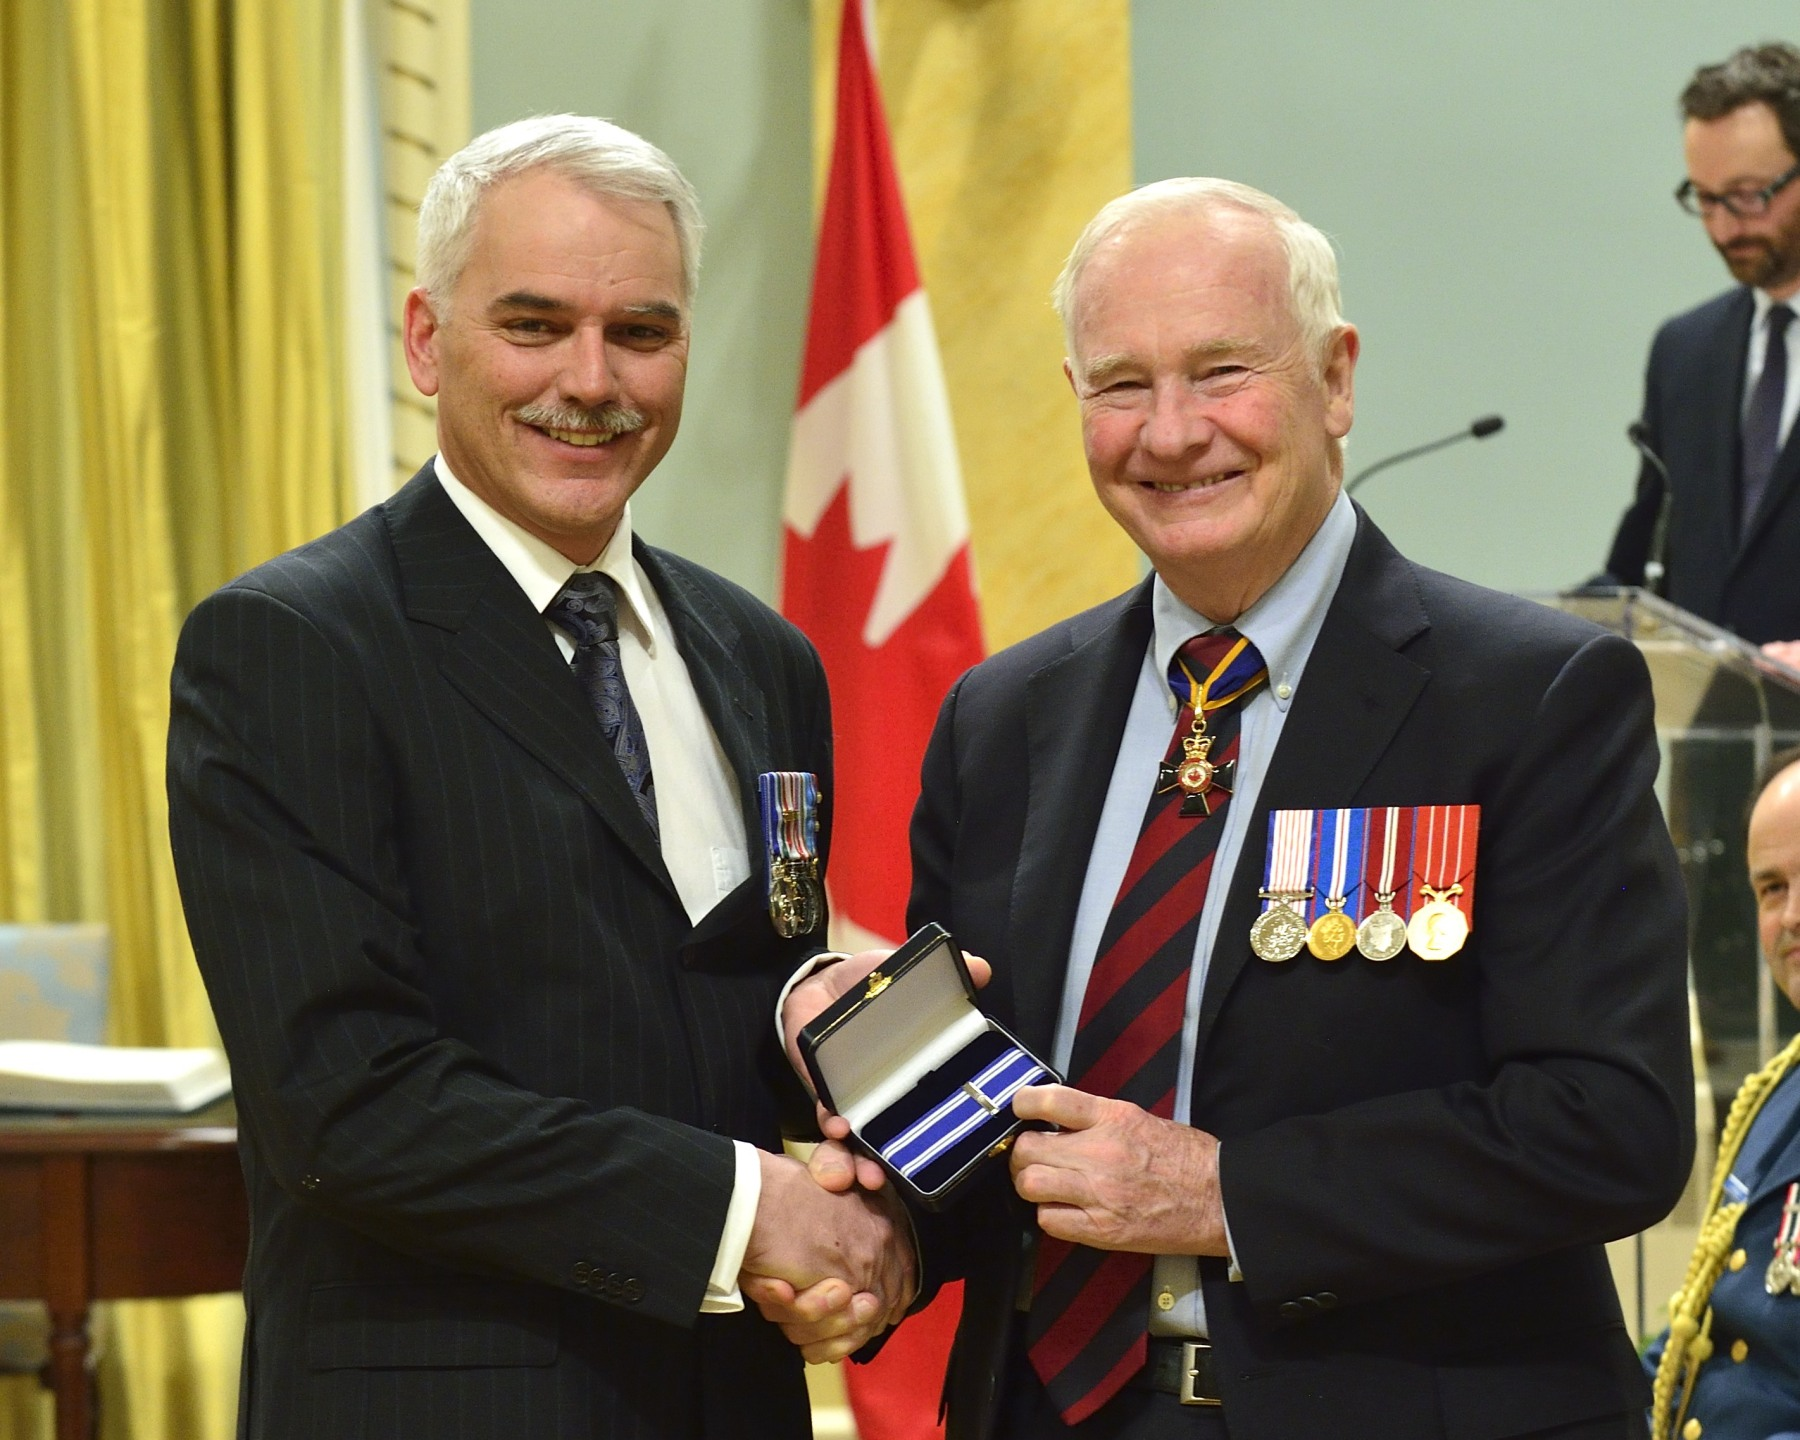 Colonel Jean François Riffou, M.S.M.*, C.D. (Québec, Quebec) received the Meritorious Service Medal, the second of his career. As the commander of Task Force Jerusalem from August 2011 to May 2012, Colonel Riffou led the Canadian contingent sent to support security sector reform of the Palestinian Authority. His extensive experience and intellectual capacity helped lay the foundation for major transformations within the organization of the United States Security Coordinator. His work helped to strengthen the role of the Canadian Armed Forces within the mission and to cement Canada's reputation as an important collaborator in the Middle East.